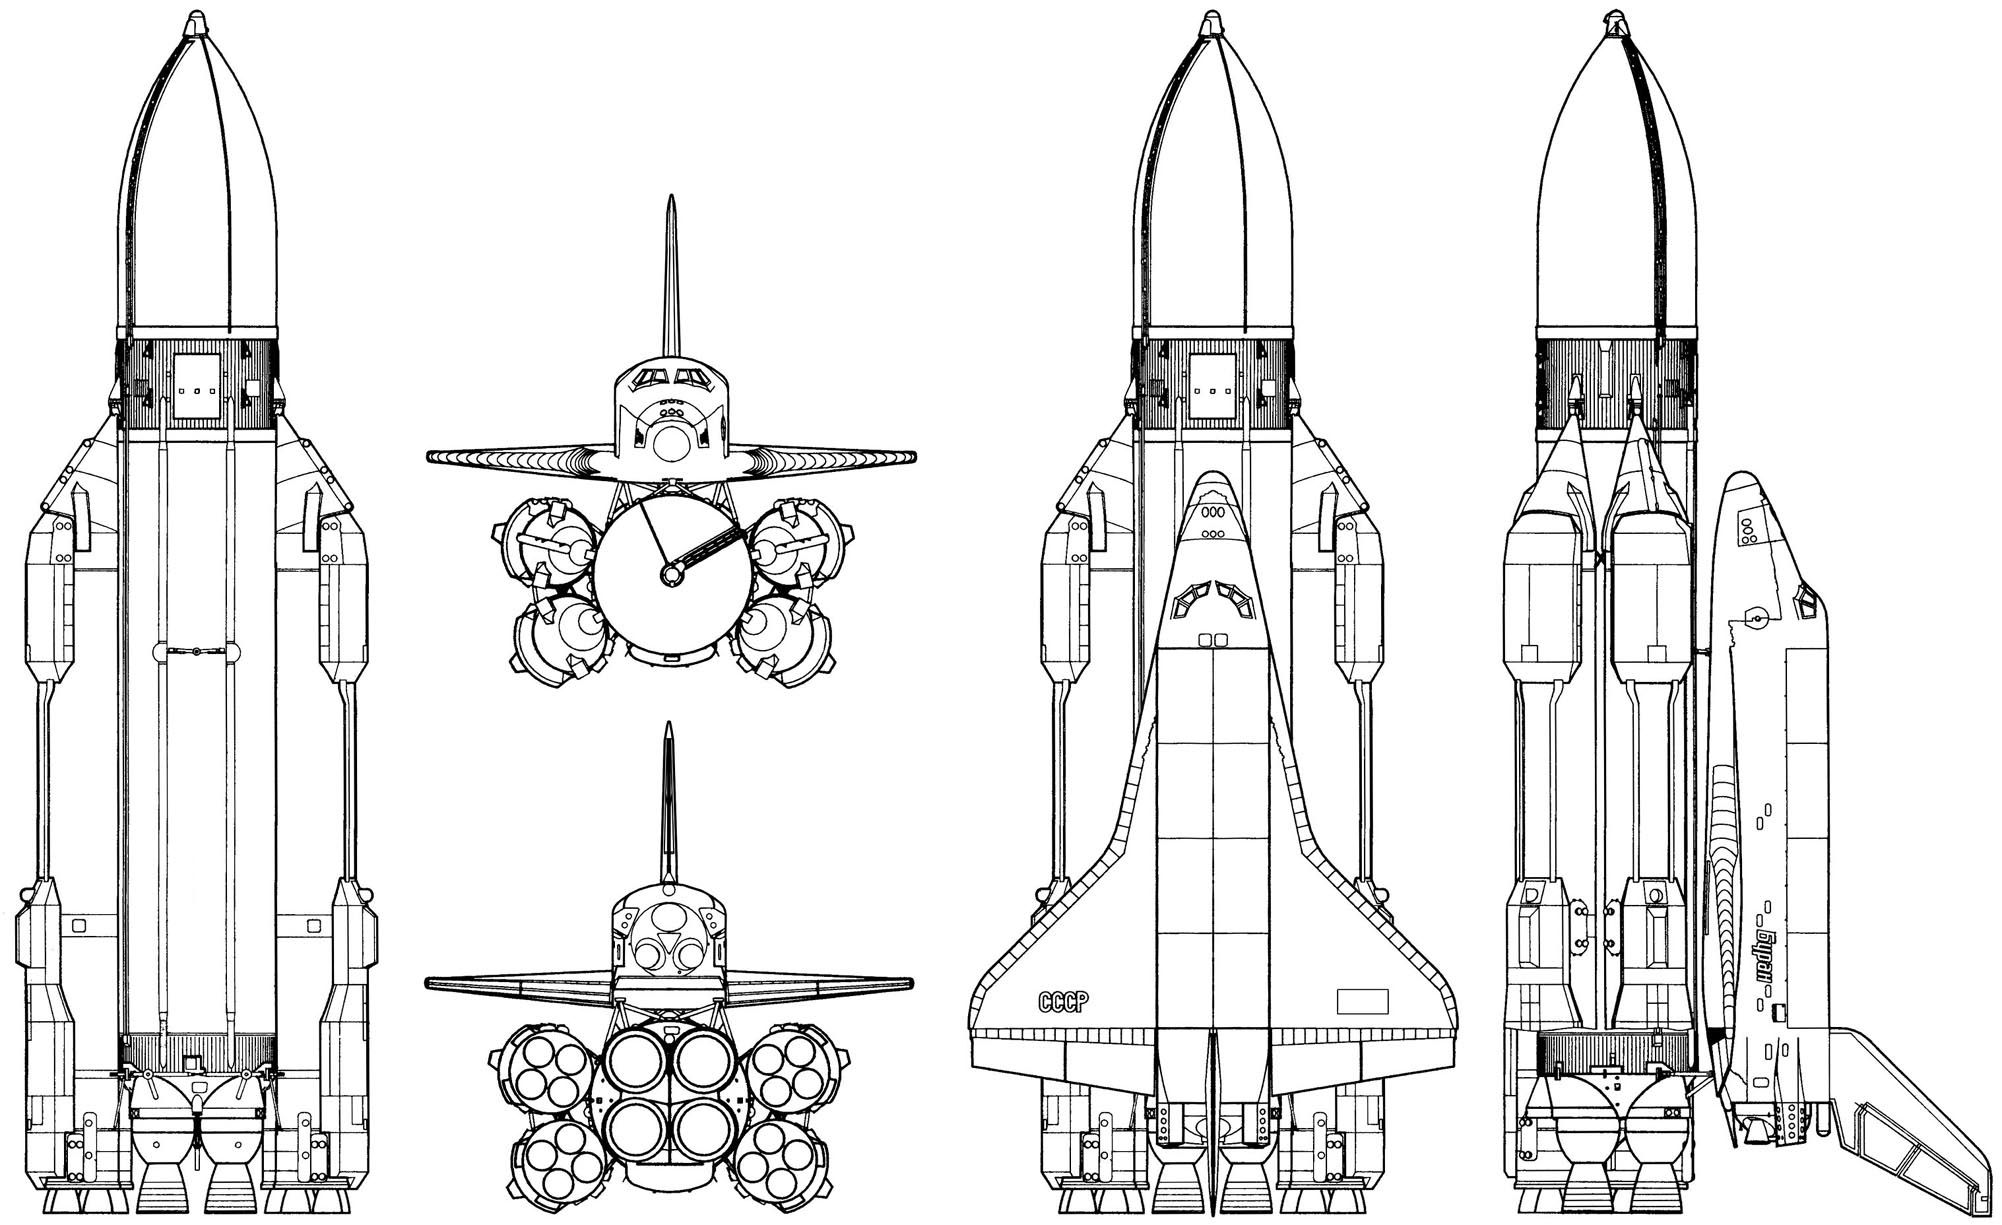 Orthographic Projection Of The Energiya Launch Vehicle